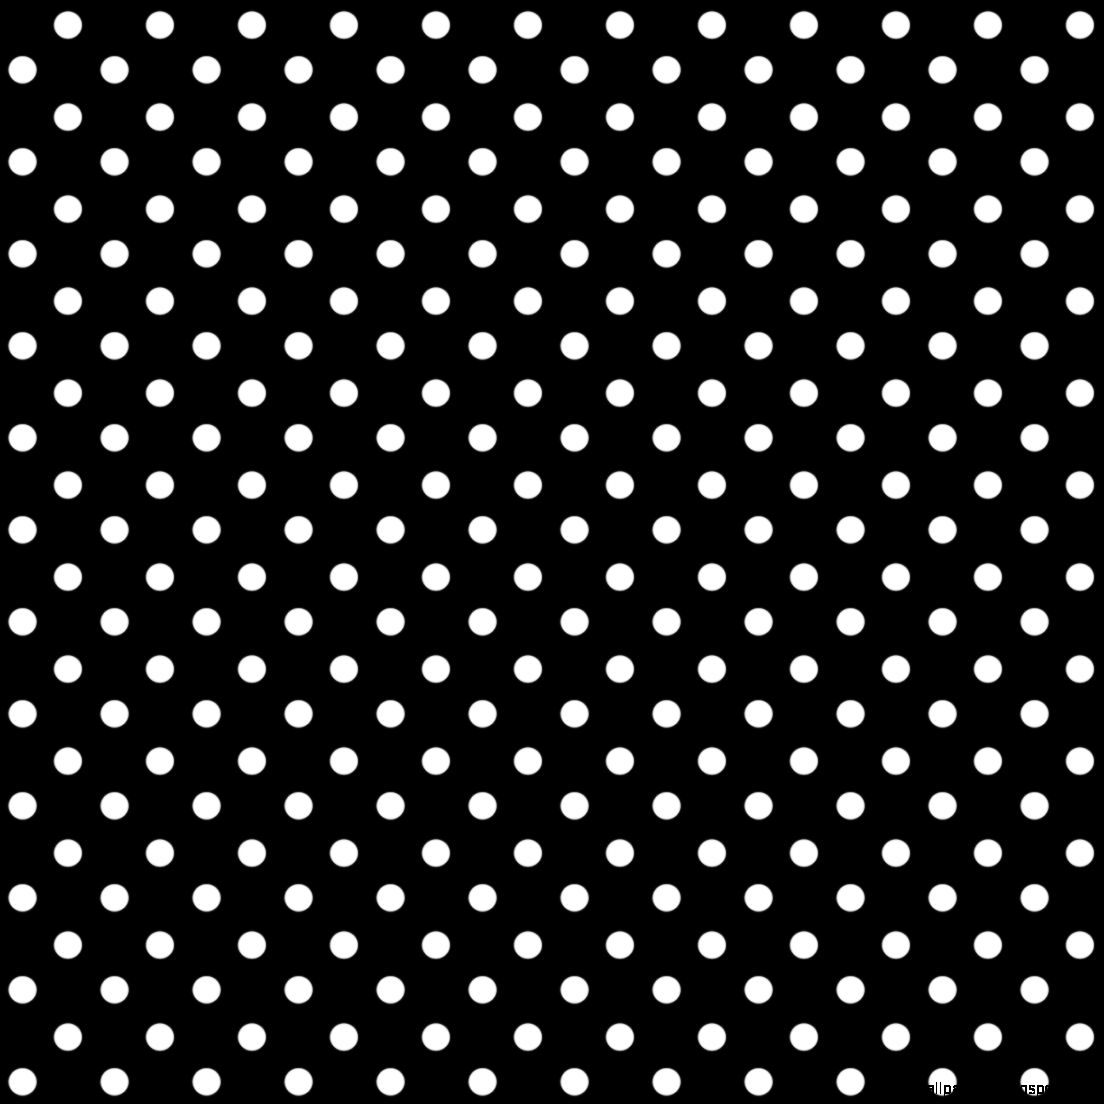 Black and white polka dot pattern - photo#2